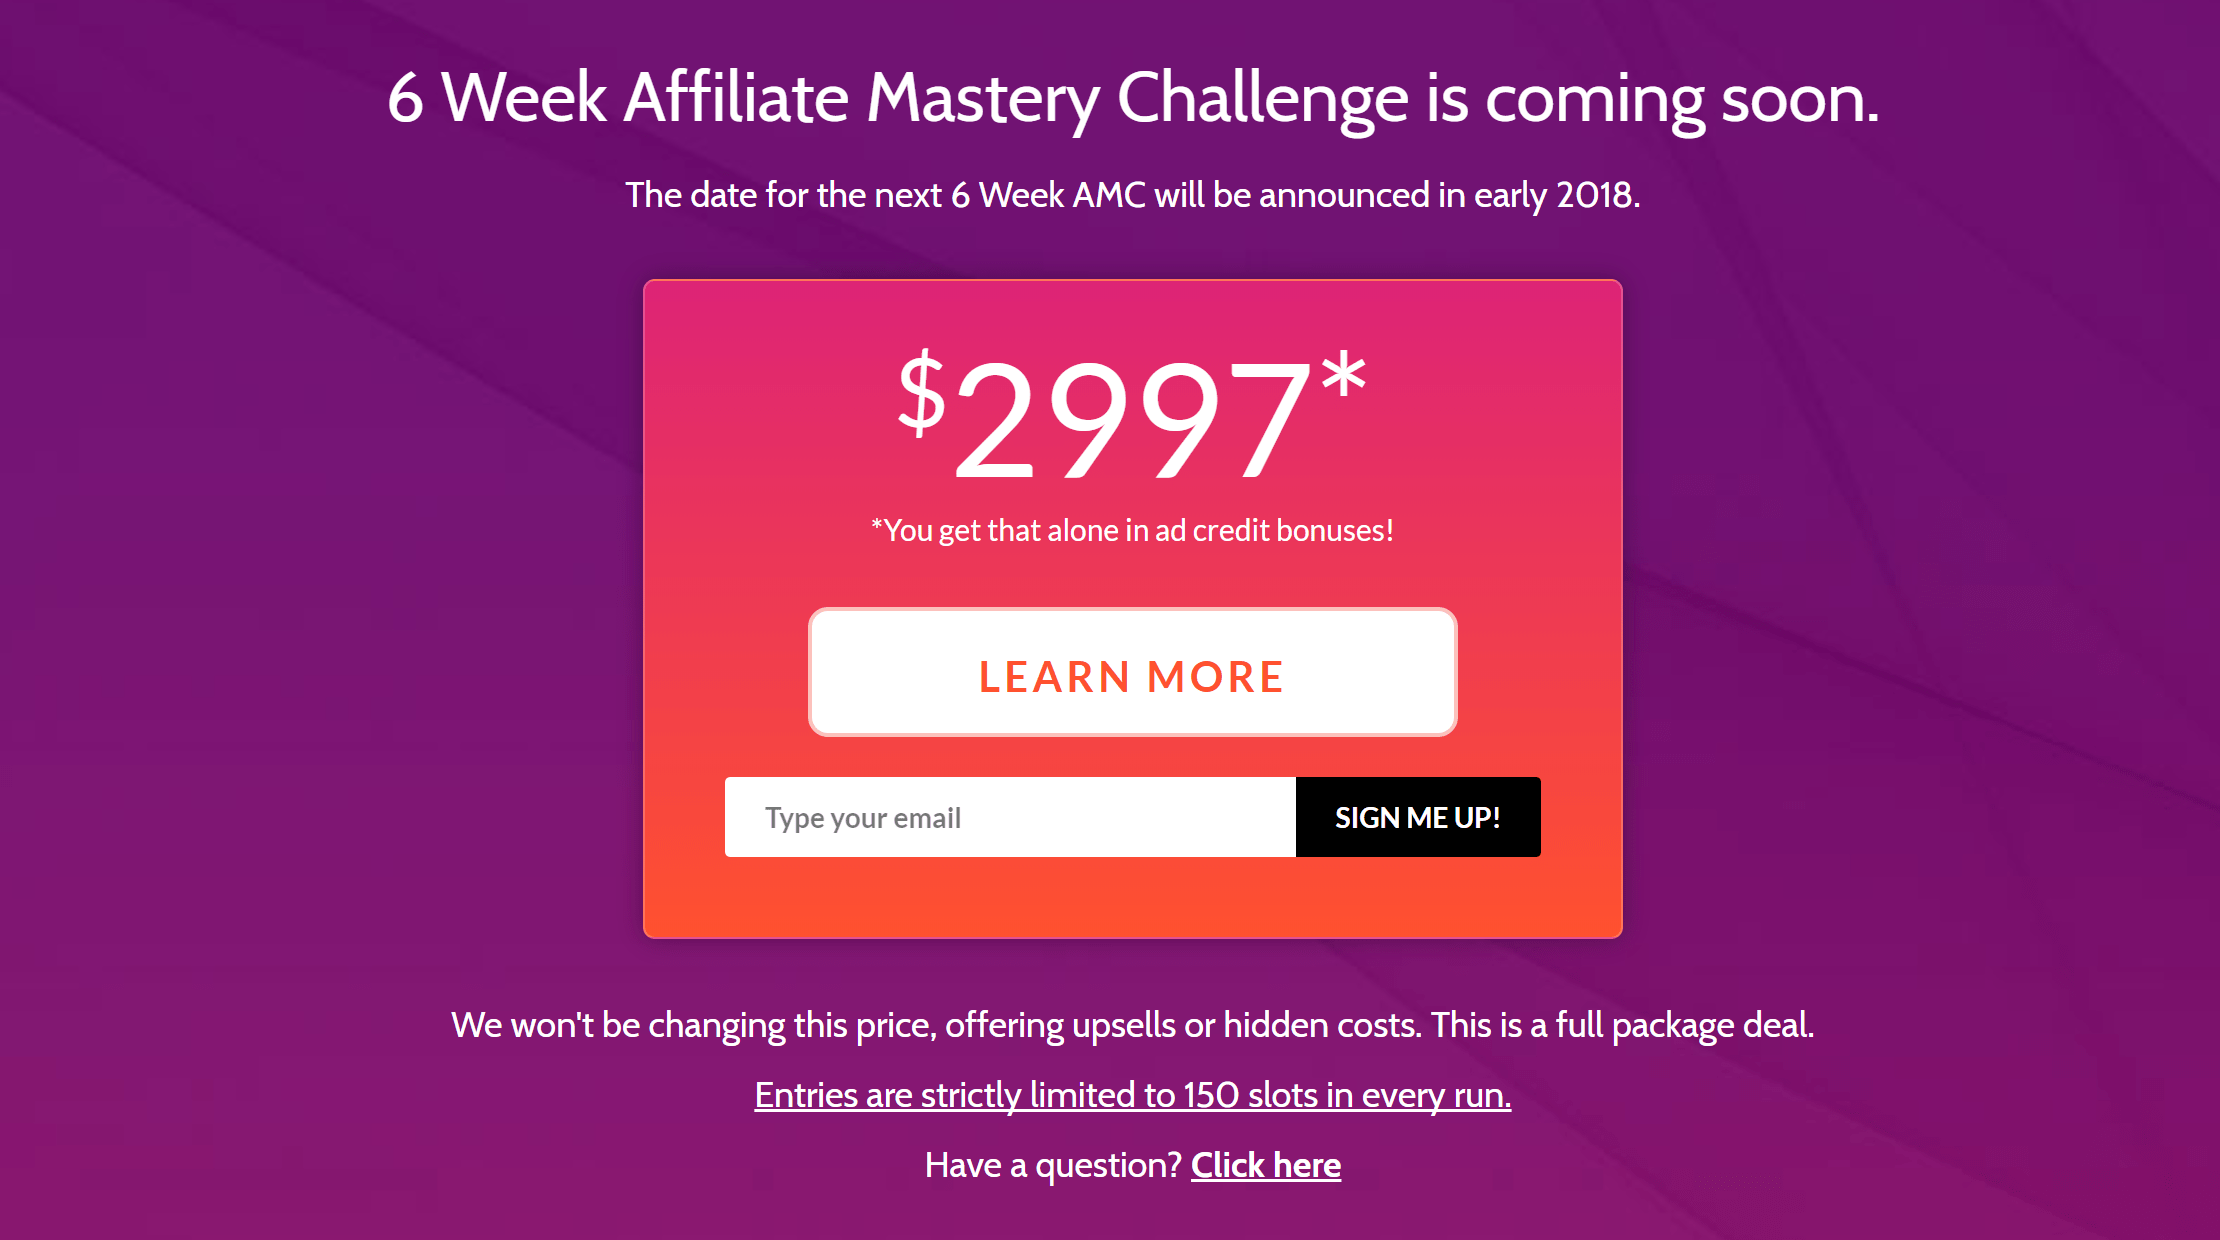 6 Week Affiliate Mastery Challenge Training Review 2018 ...